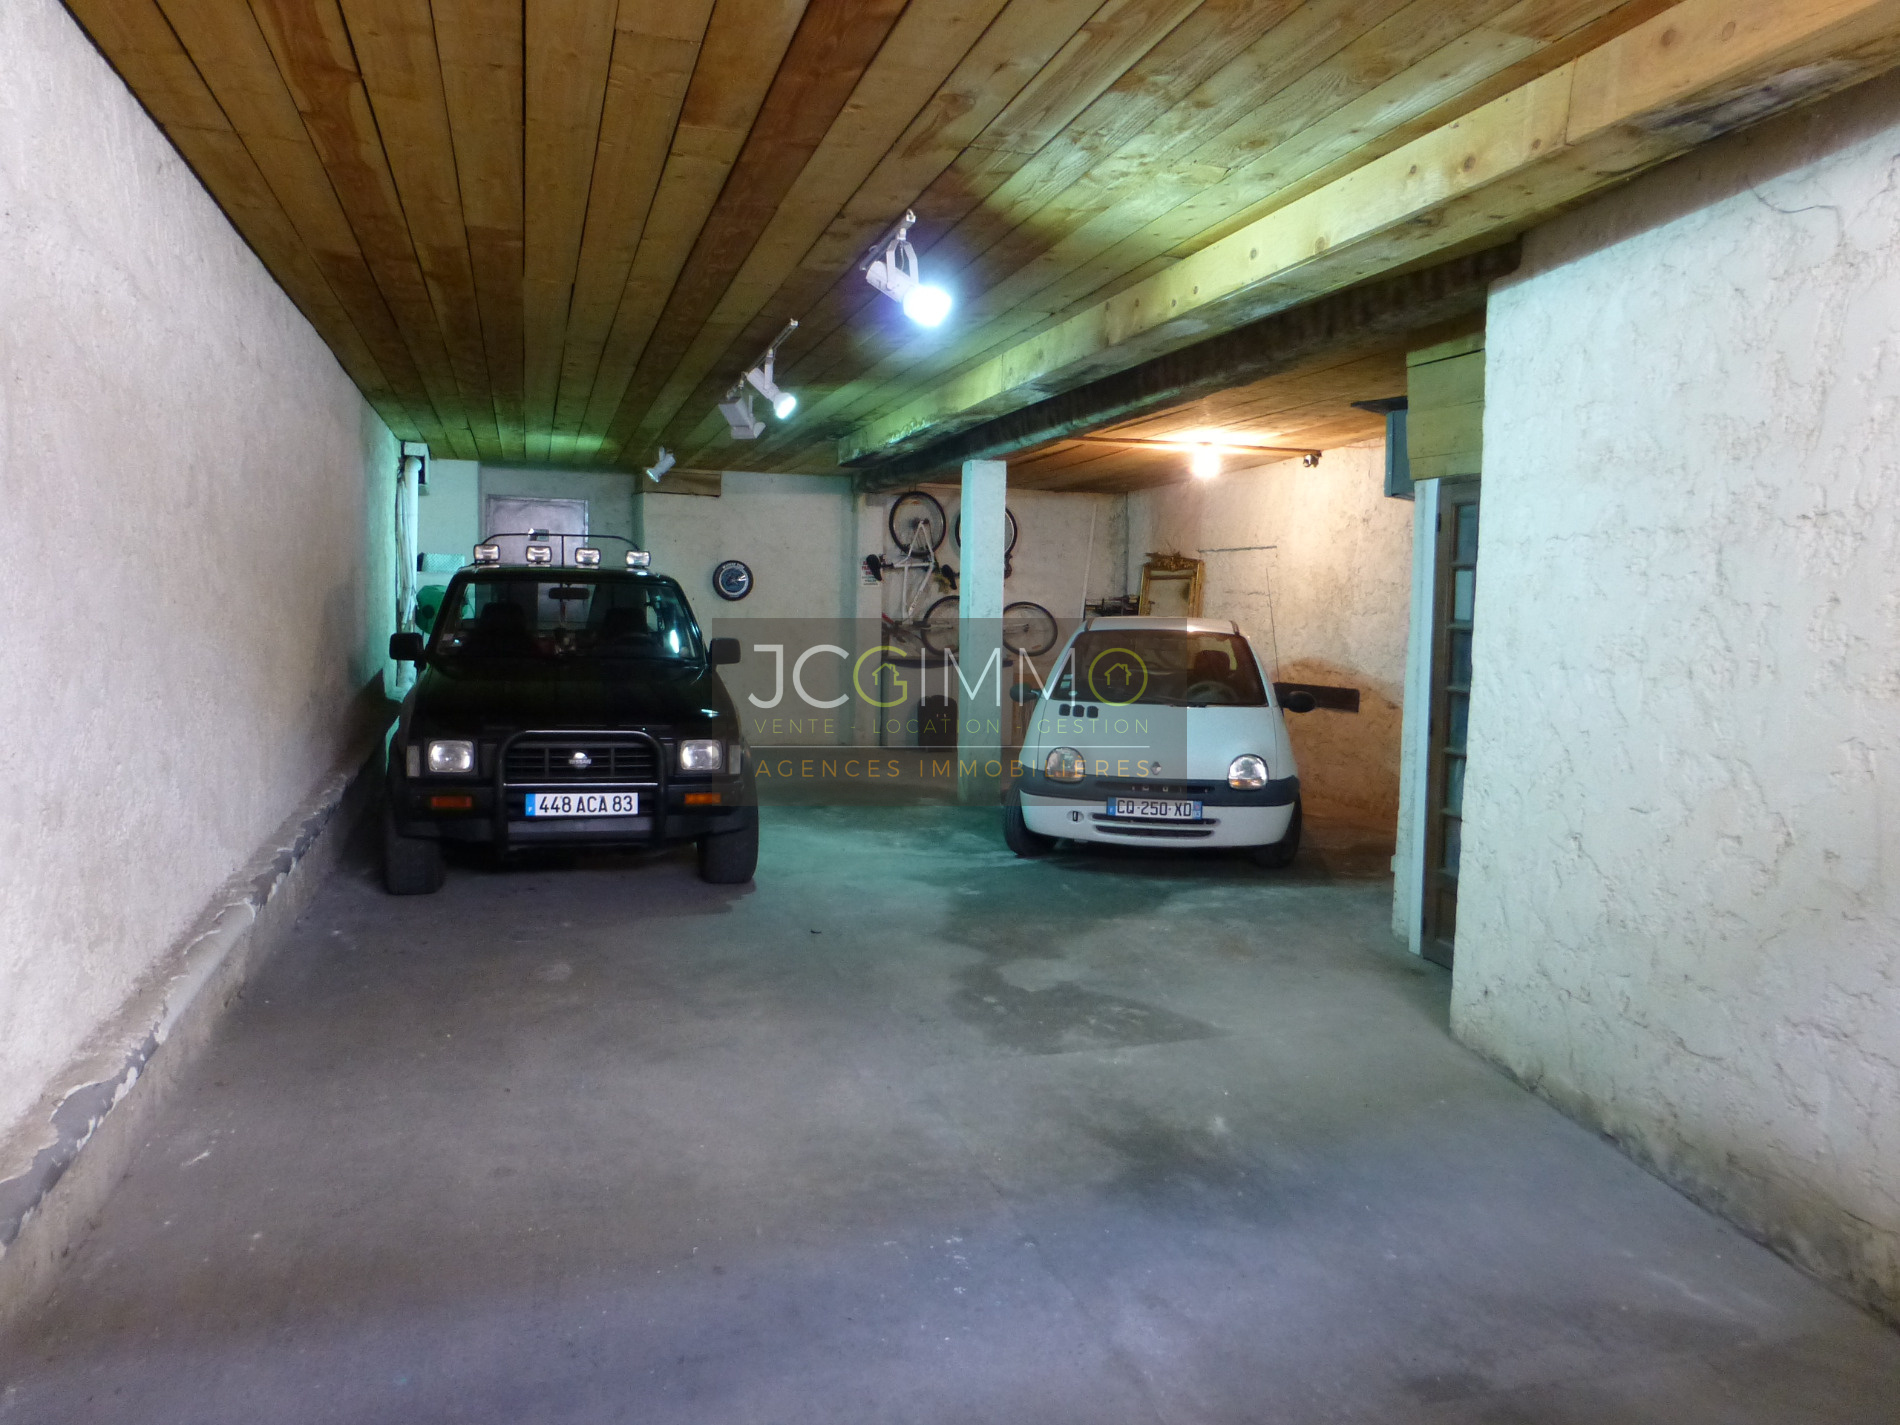 Vente maison loft exceptionnelle unique avec immense garage for Location garage sollies pont